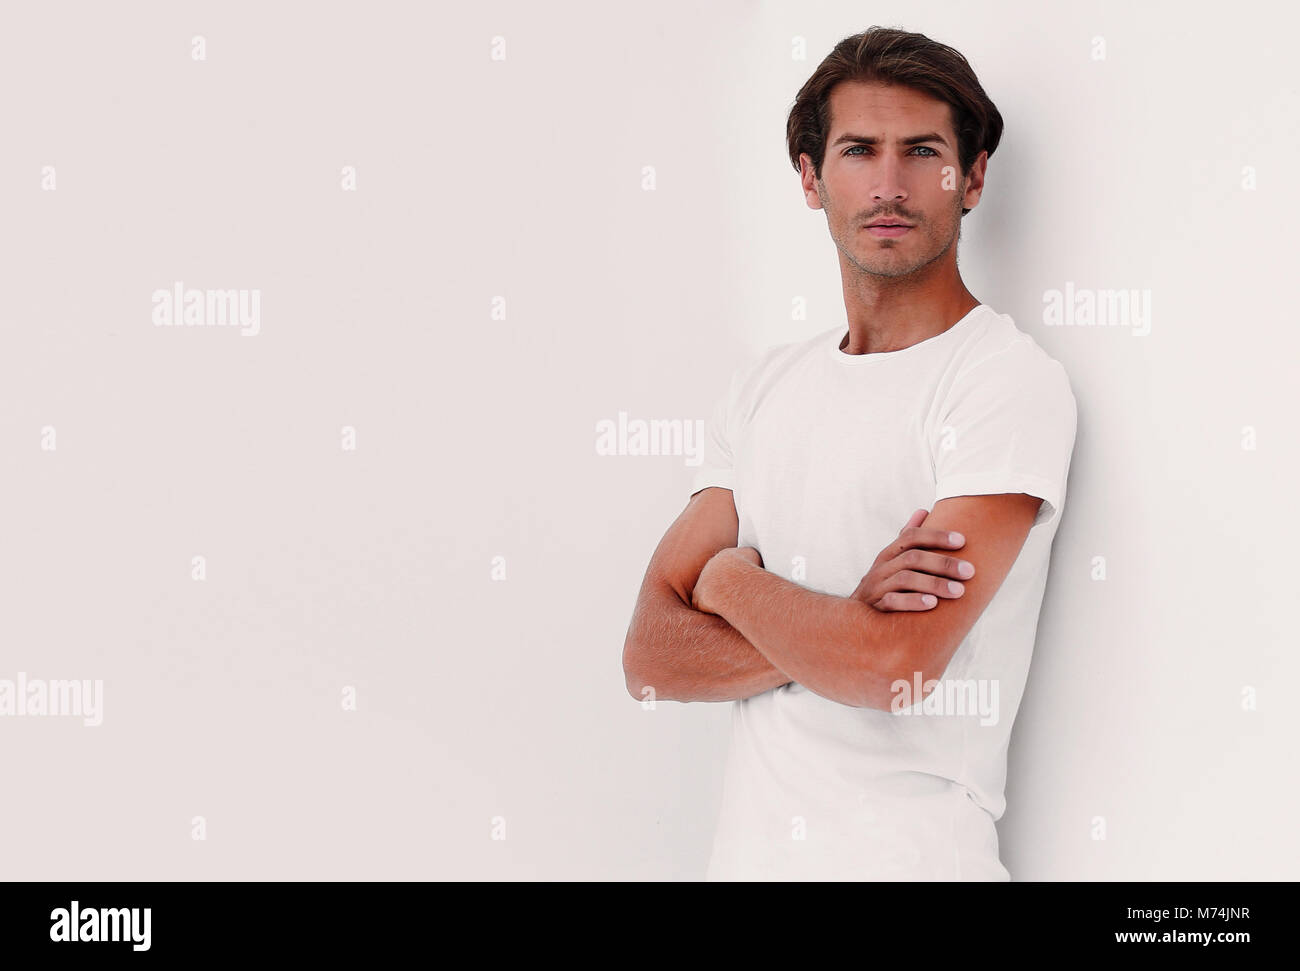 background image of a pensive man leaning on wall - Stock Image